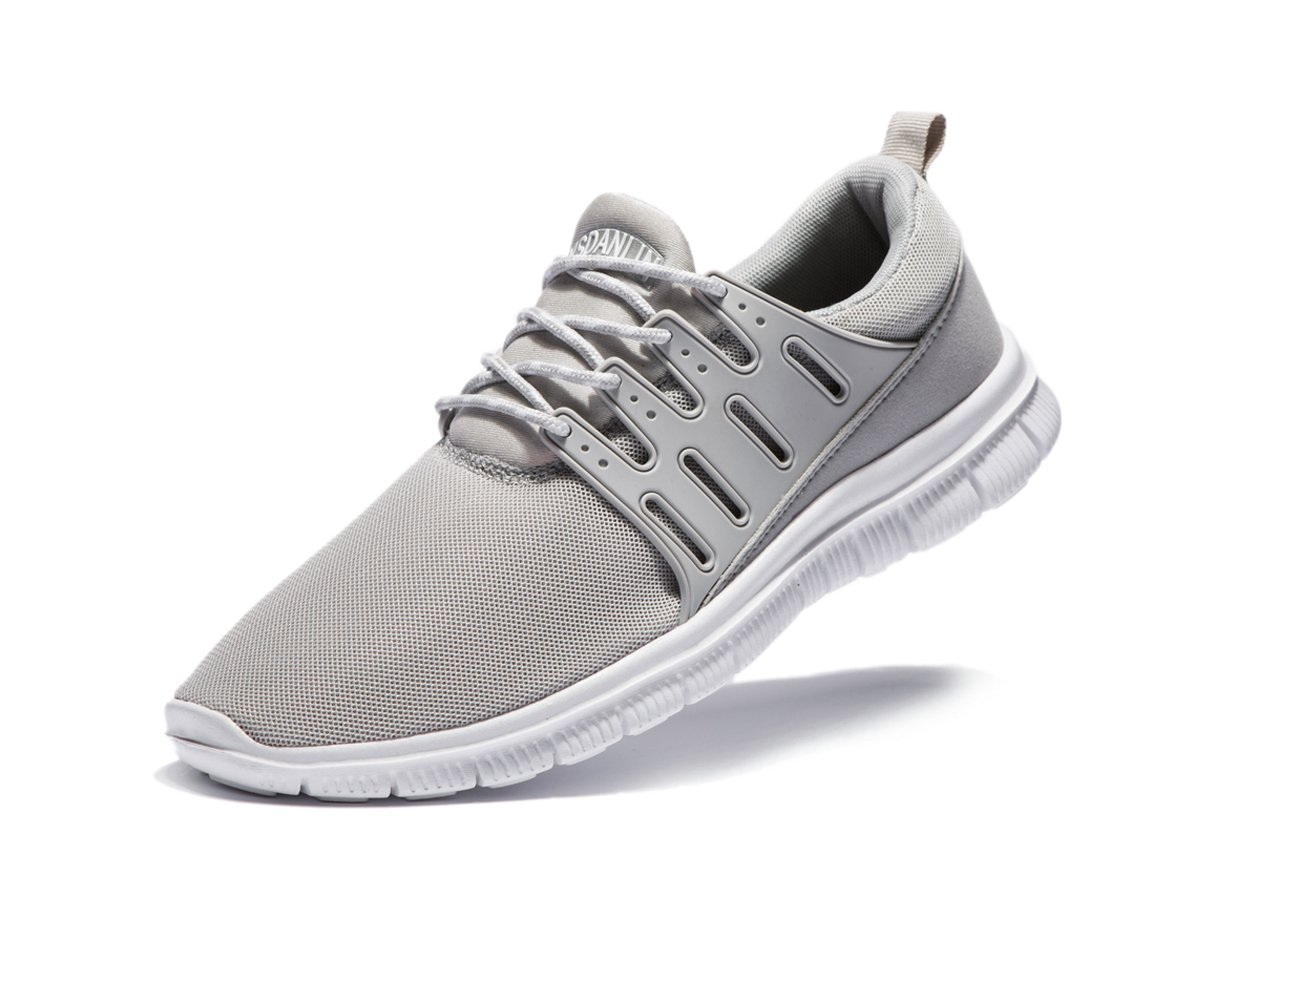 a23af0ea2ee3d VSDANLIN Men's Running Shoes Lightweight Athletic Breathable Mesh Anti-Slip  Casual Comfortable Sneakers